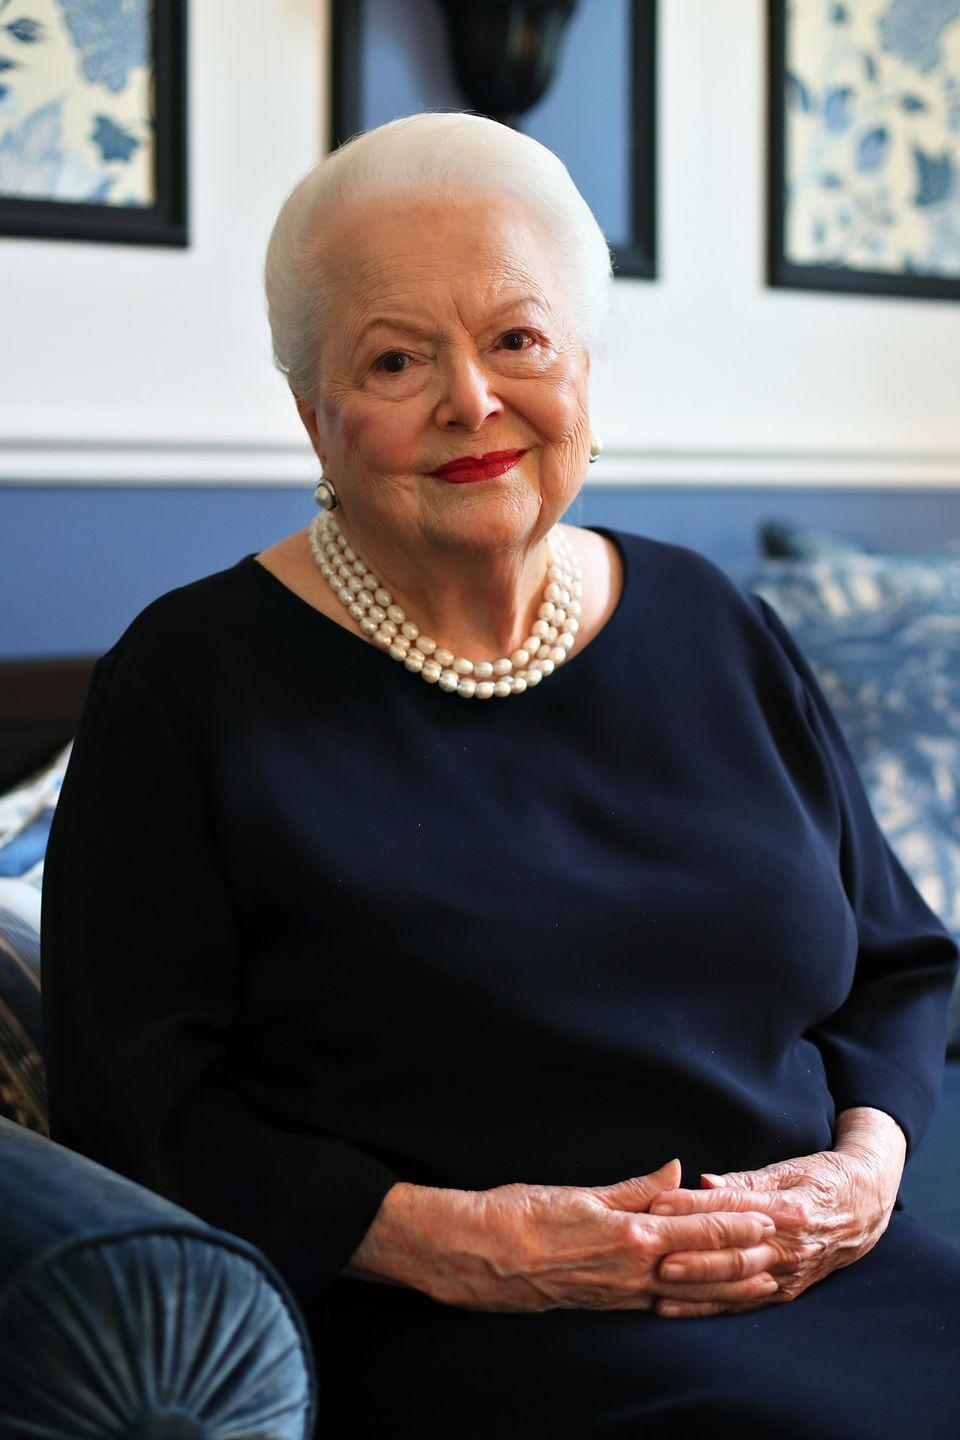 <p>At 100, de Havilland smiles in a classic navy dress and pearl jewelry. </p>